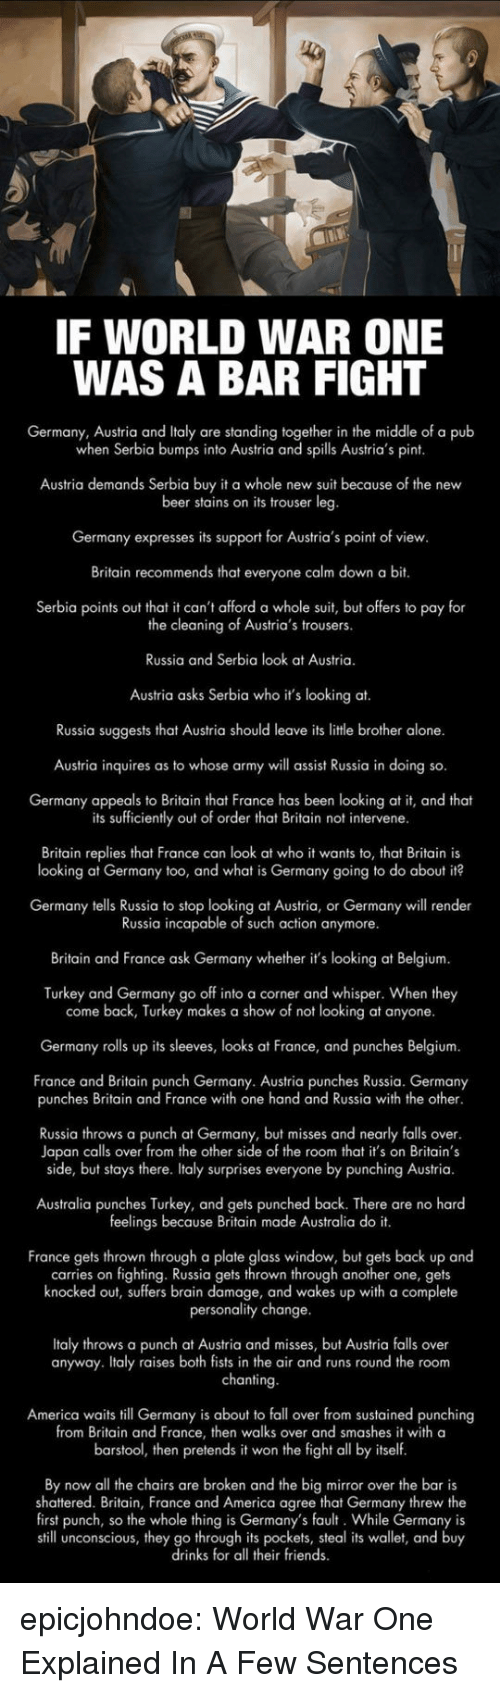 Belgium: IF WORLD WAR ONE  WAS A BAR FIGHT  Germany, Austria and Italy are standing together in the middle of a pub  when Serbia bumps into Austria and spills Austria's pint  Austria demands Serbia buy it a whole new suit because of the new  beer stains on its trouser leg  Germany expresses its support for Austria's point of view  Britain recommends that everyone calm down a bit.  Serbia points out that it can't afford a whole suit, but offers to pay for  the cleaning of Austria's trousers.  Russia and Serbia look at Austria.  Austria asks Serbia who it's looking at.  Russia suggests that Austria should leave its litle brother alone.  Austria inquires as to whose army will assist Russia in doing so.  Germany appeals to Britain that France has been looking at it, and theat  its sufficiently out of order that Britain not intervene  Britain replies that France can look at who it wants to, that Britain is  looking at Germany too, and what is Germany going to do about it?  Germany tells Russia to stop looking at Austria, or Germany will render  Russia incapable of such action anymore.  Britain and France ask Germany whether it's looking at Belgium  Turkey and Germany go off into a corner and whisper. When they  come back, Turkey makes a show of not looking at anyone.  Germany rolls up its sleeves, looks at France, and punches Belgium.  France and Britain punch Germany. Austria punches Russia. Germany  punches Britain and France with one hand and Russia with the other  Russia throws a punch at Germany, but misses and nearly falls over  Japan calls over from the other side of the room that it's on Britain's  side, but stays there. Italy surprises everyone by punching Austria.  Australia punches Turkey, and gets punched back. There are no hard  feelings because Britain made Australia do it.  France gets thrown through a plate glass window, but gets back up and  carries on fighting. Russia gets thrown through another one, gets  knocked out, suffers brain damage, and wakes up with a complete  personality change  Italy throws a punch at Austria and misses, but Austria falls over  anyway. Italy raises both fists in the air and runs round the room  chanting  America waits till Germany is about to fall over from sustained punching  from Britain and France, then walks over and smashes it with a  barstool, then pretends it won the fight all by itself  By now all the chairs are broken and the big mirror over the bar is  shattered. Britain, France and America agree that Germany threw the  first punch, so the whole thing is Germany's fault. While Germany is  still unconscious, they go through its pockets, steal its wallet, and buy  drinks for all their friends epicjohndoe:  World War One Explained In A Few Sentences